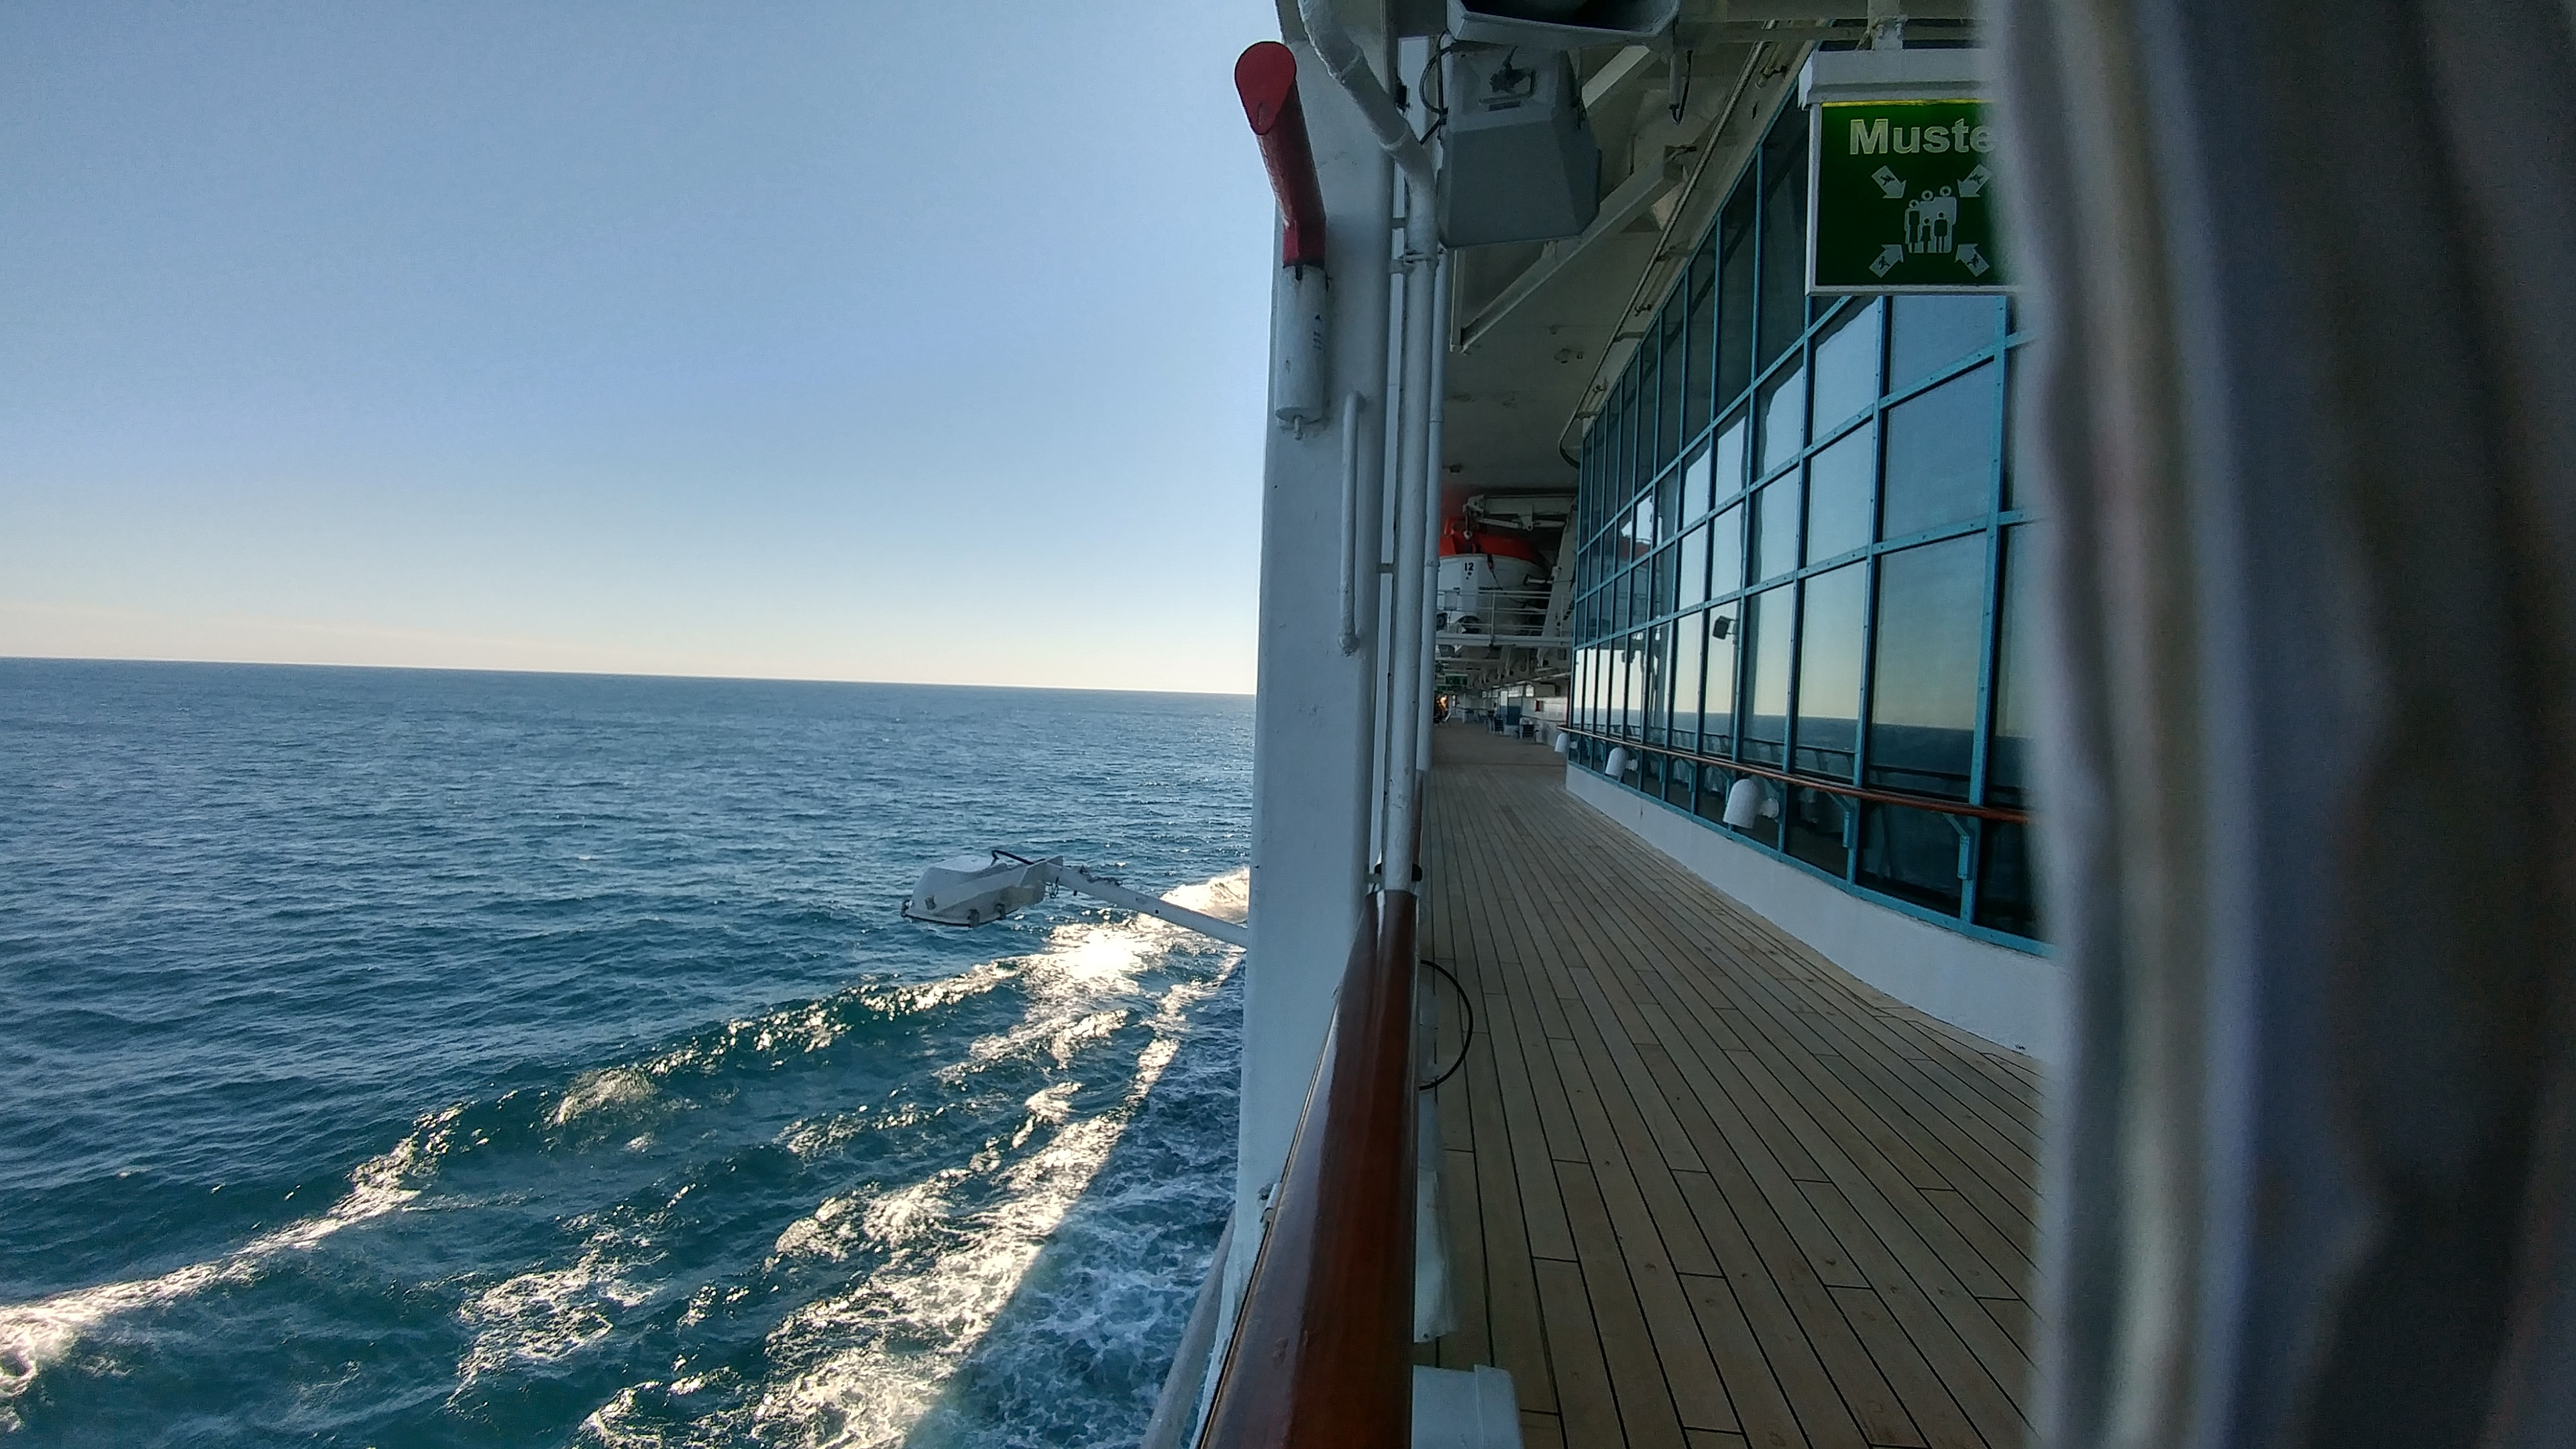 A Cruise To Enjoy Grandeur Of The Seas Cruise Review